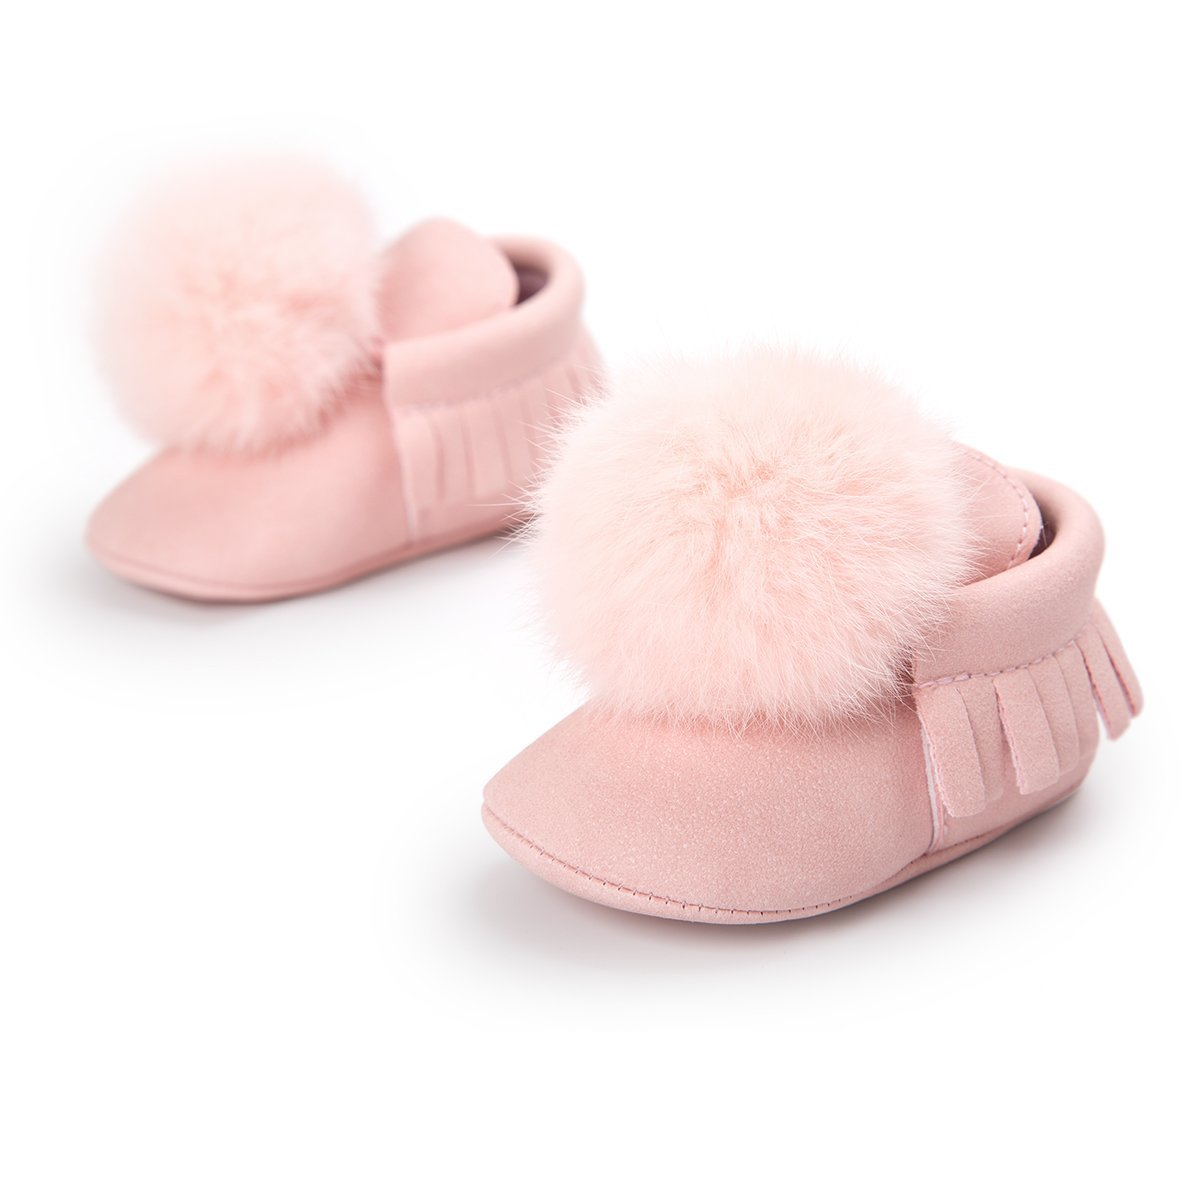 0-18M Toddler Baby Boy Girl Pompon ball First Walkers Shoes